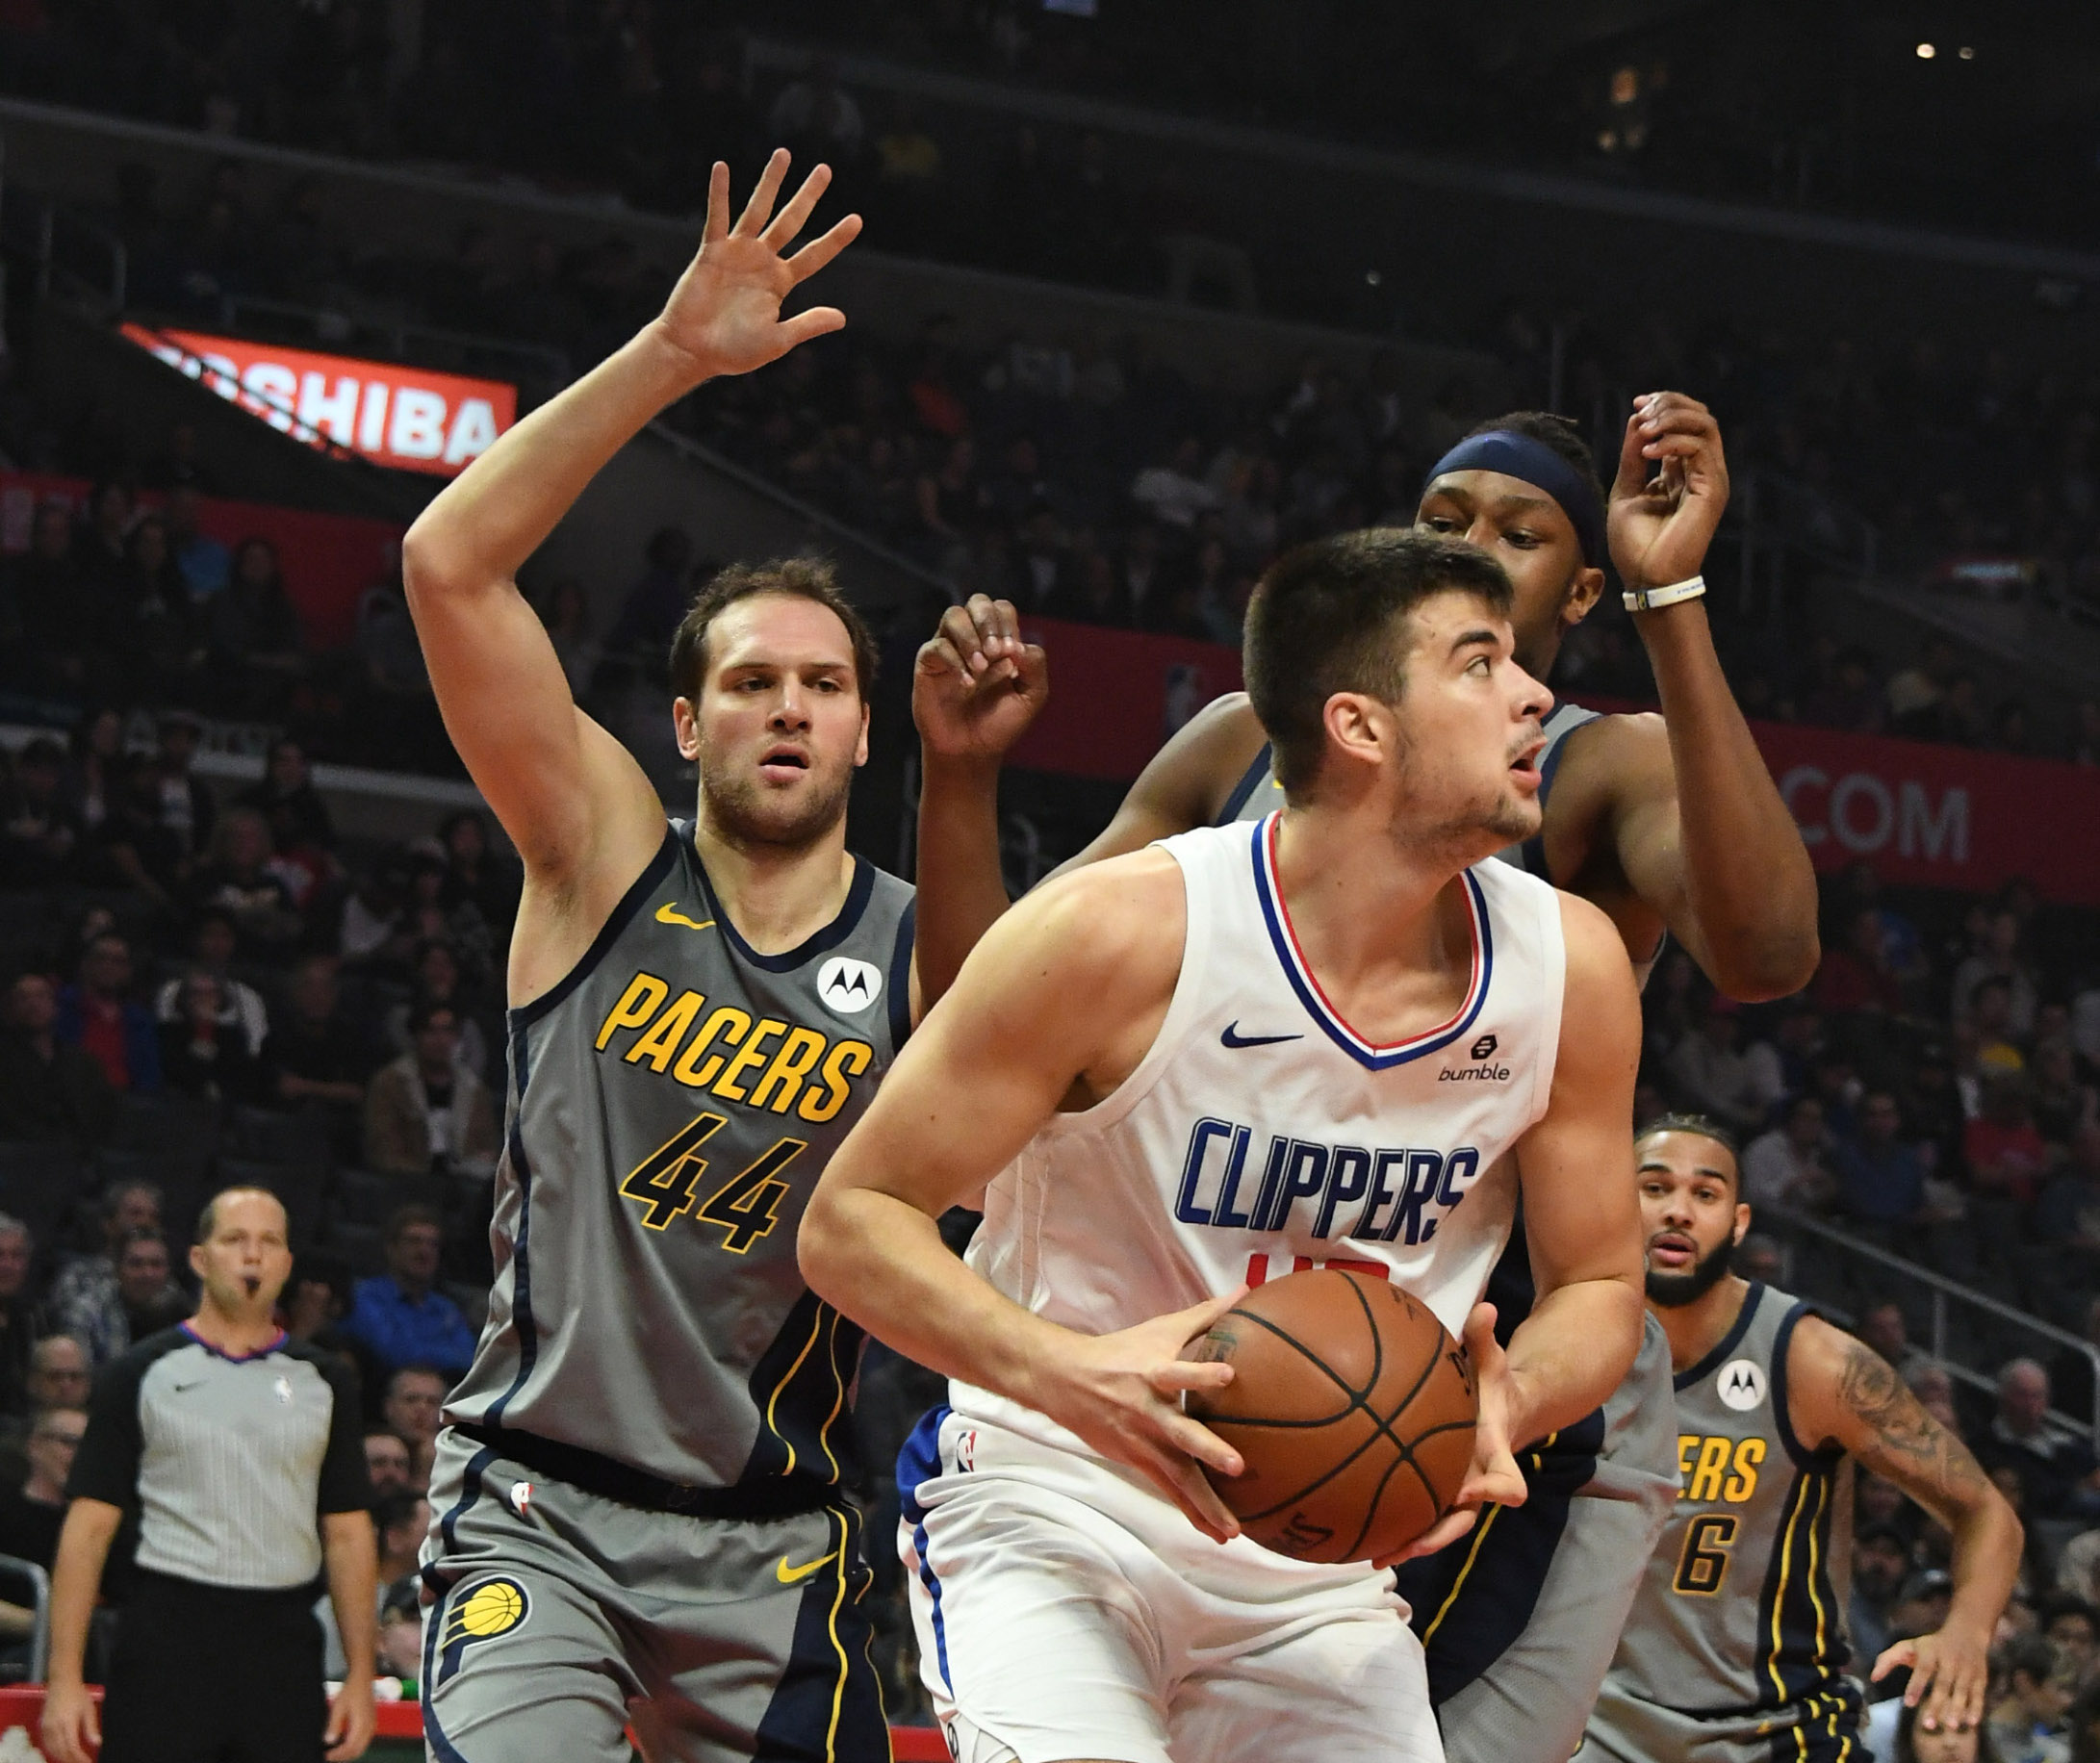 Mar 19, 2019; Los Angeles, CA, USA; LA Clippers center Ivica Zubac (40) is defended by Indiana Pacers forward Bojan Bogdanovic (44) in the first half at the Staples Center. Mandatory Credit: Richard Mackson-USA TODAY Sports - 12380266